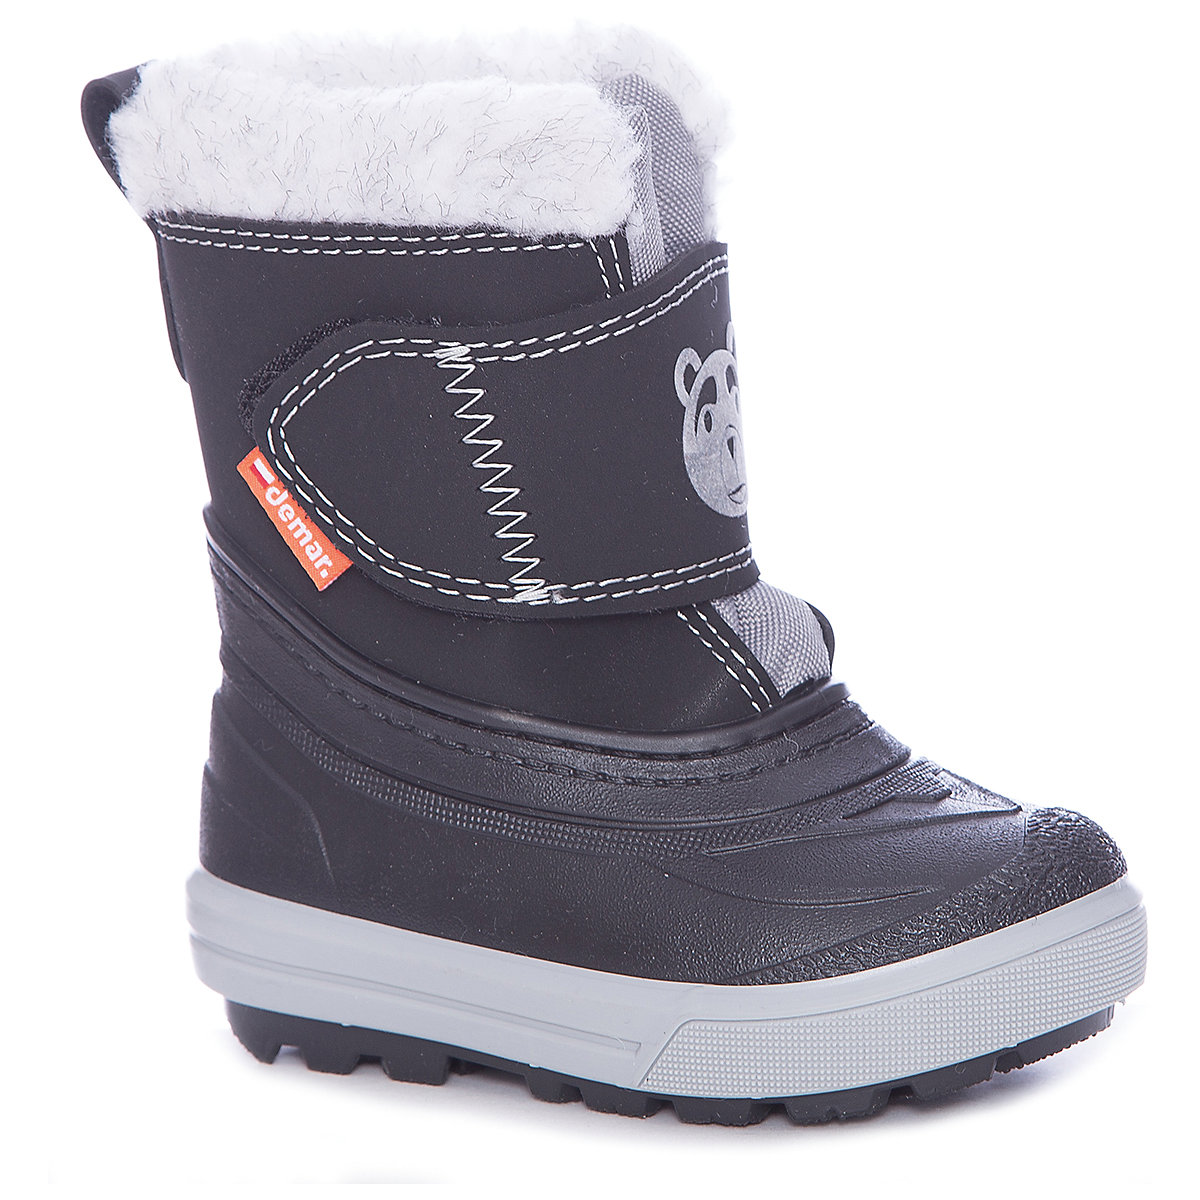 Boots Demar for boys and girls 7134870 Valenki Uggi Winter Baby Kids Children shoes boots demar for boys and girls 6835179 valenki uggi winter baby kids children shoes